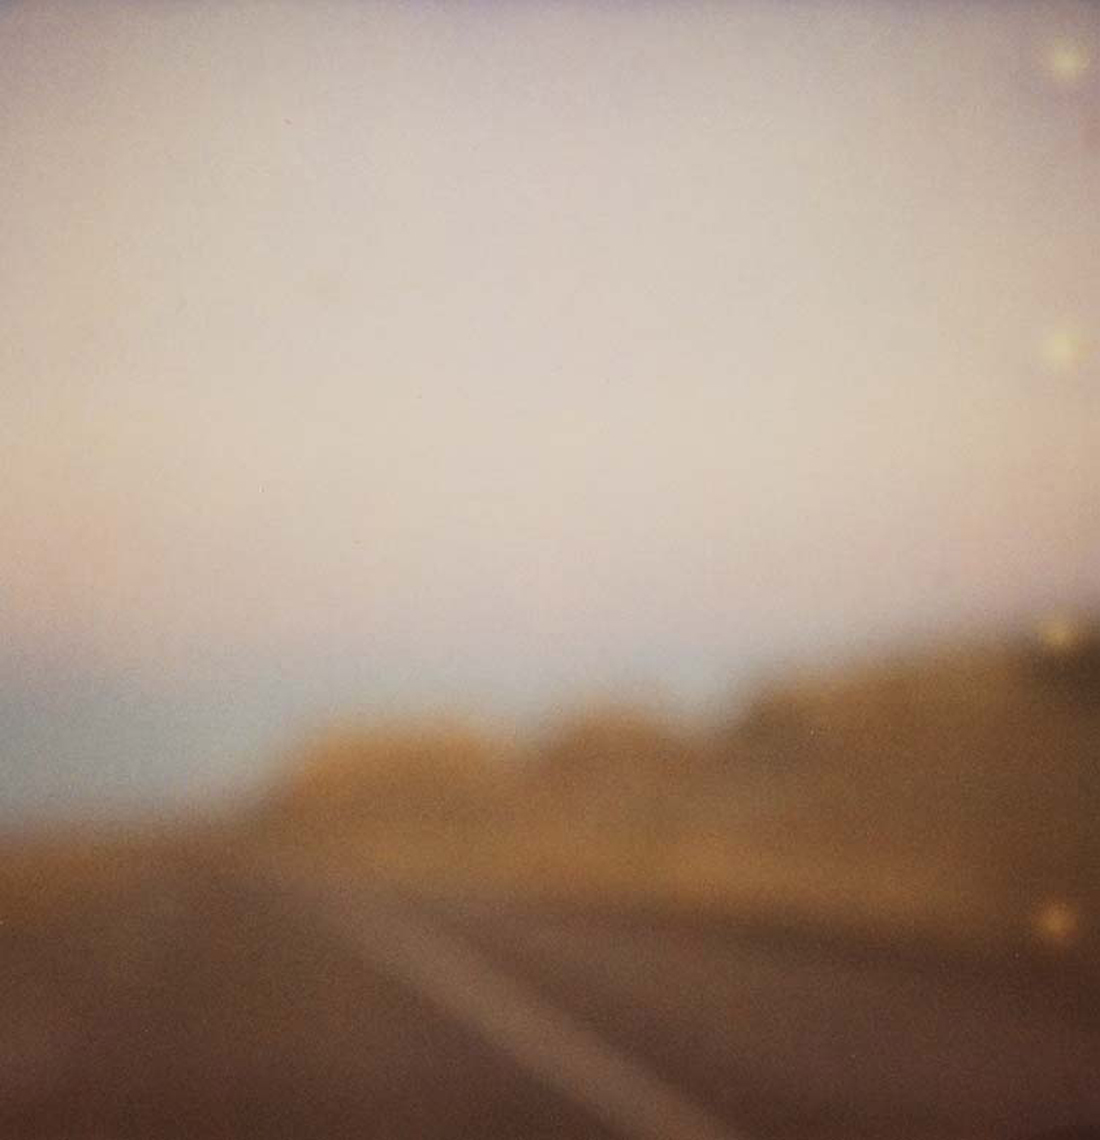 Polaroid, Jennifer Olson r1